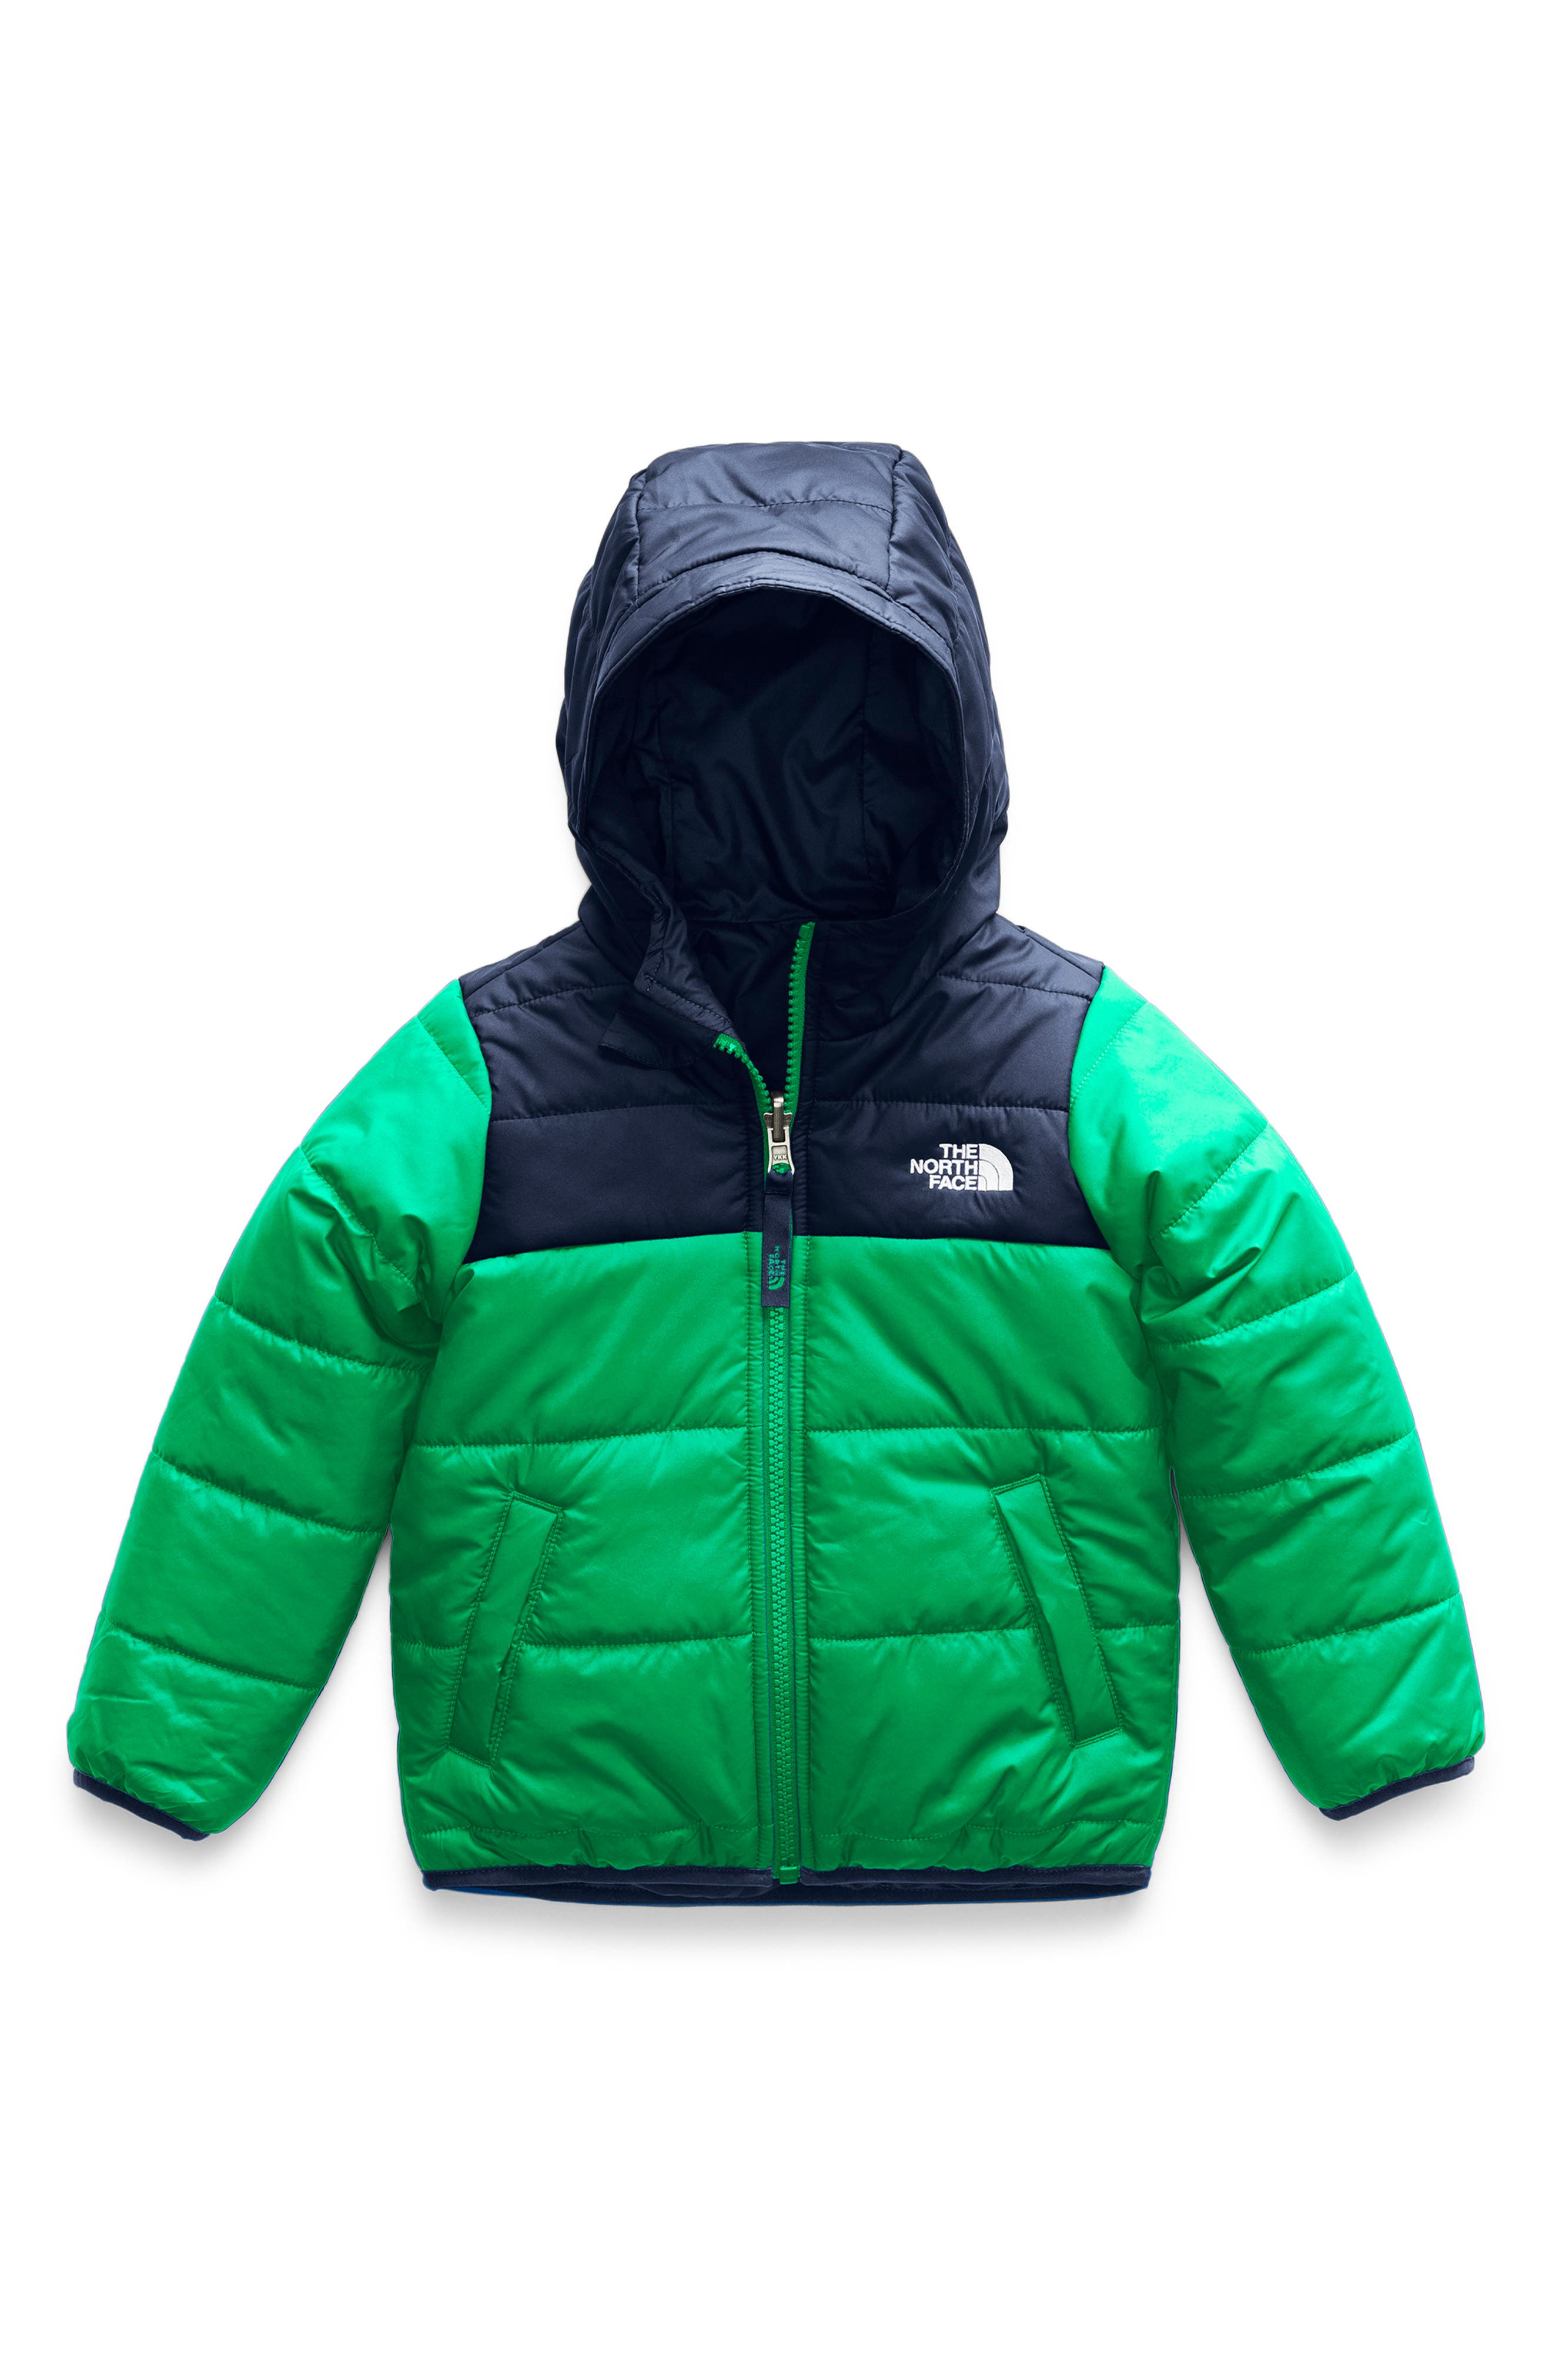 Boys The North Face Perrito Reversible Water Repellent Hooded Jacket Size 5  Green